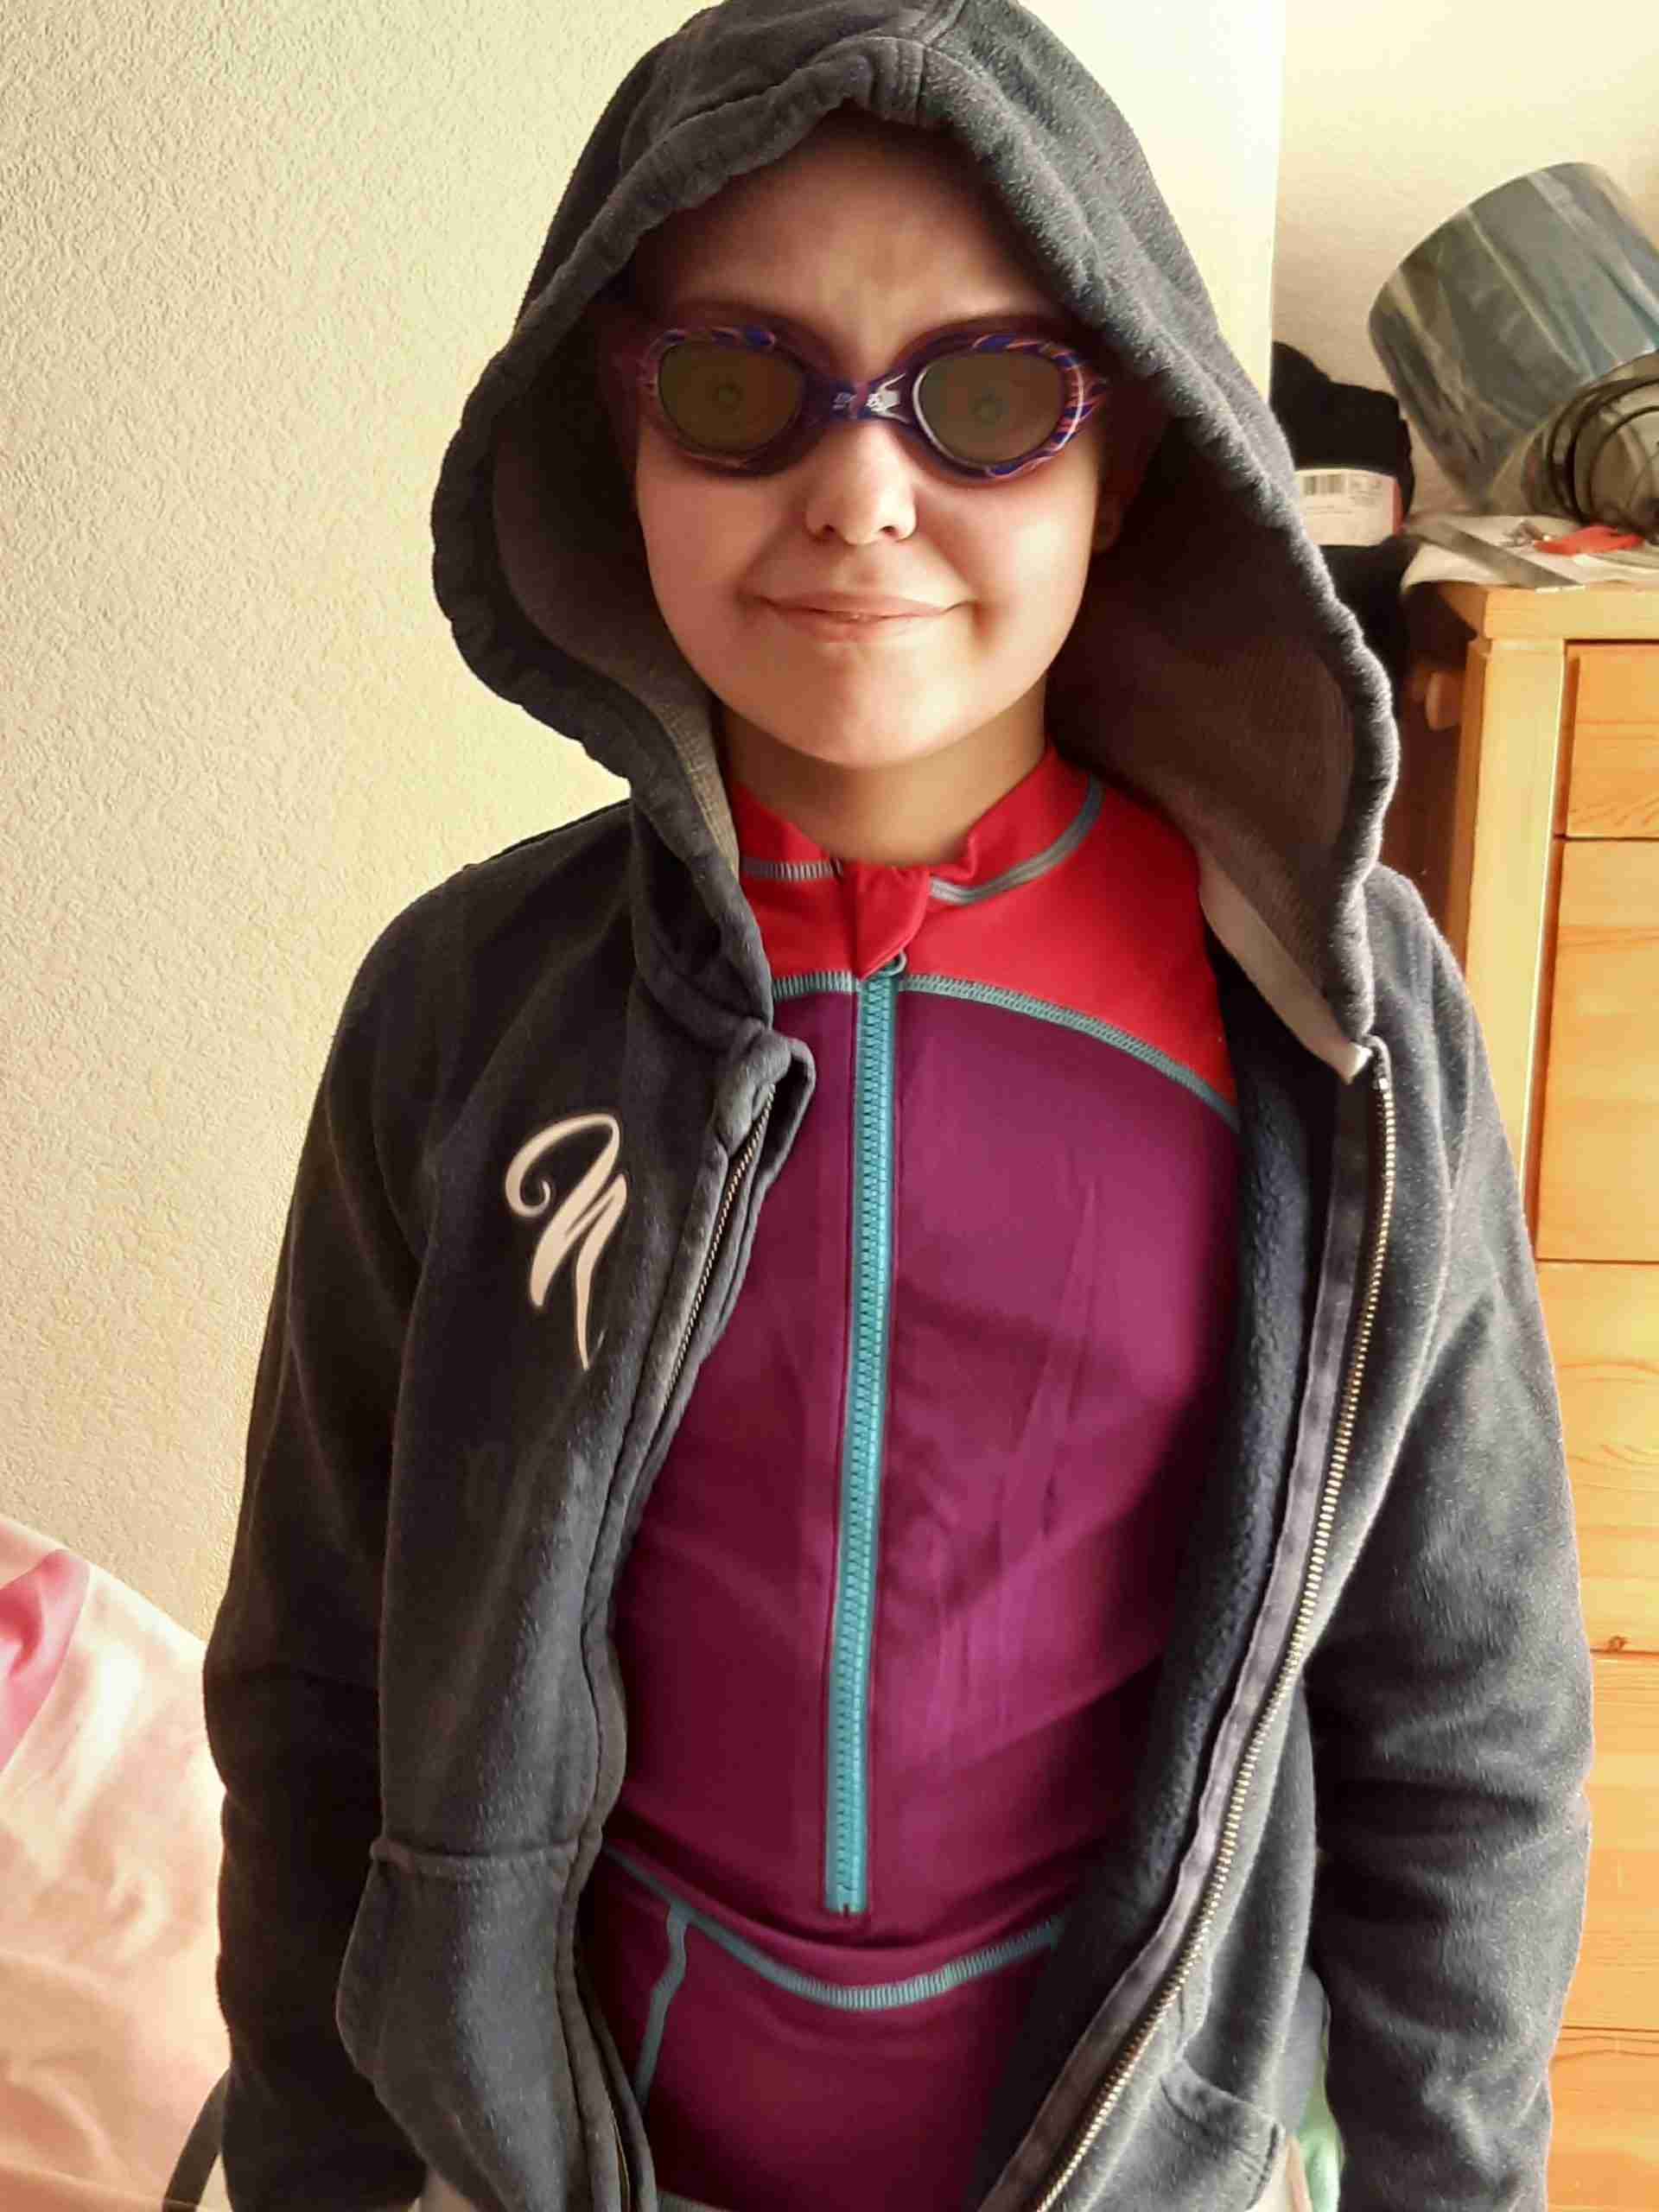 Jess in her swimming goggles